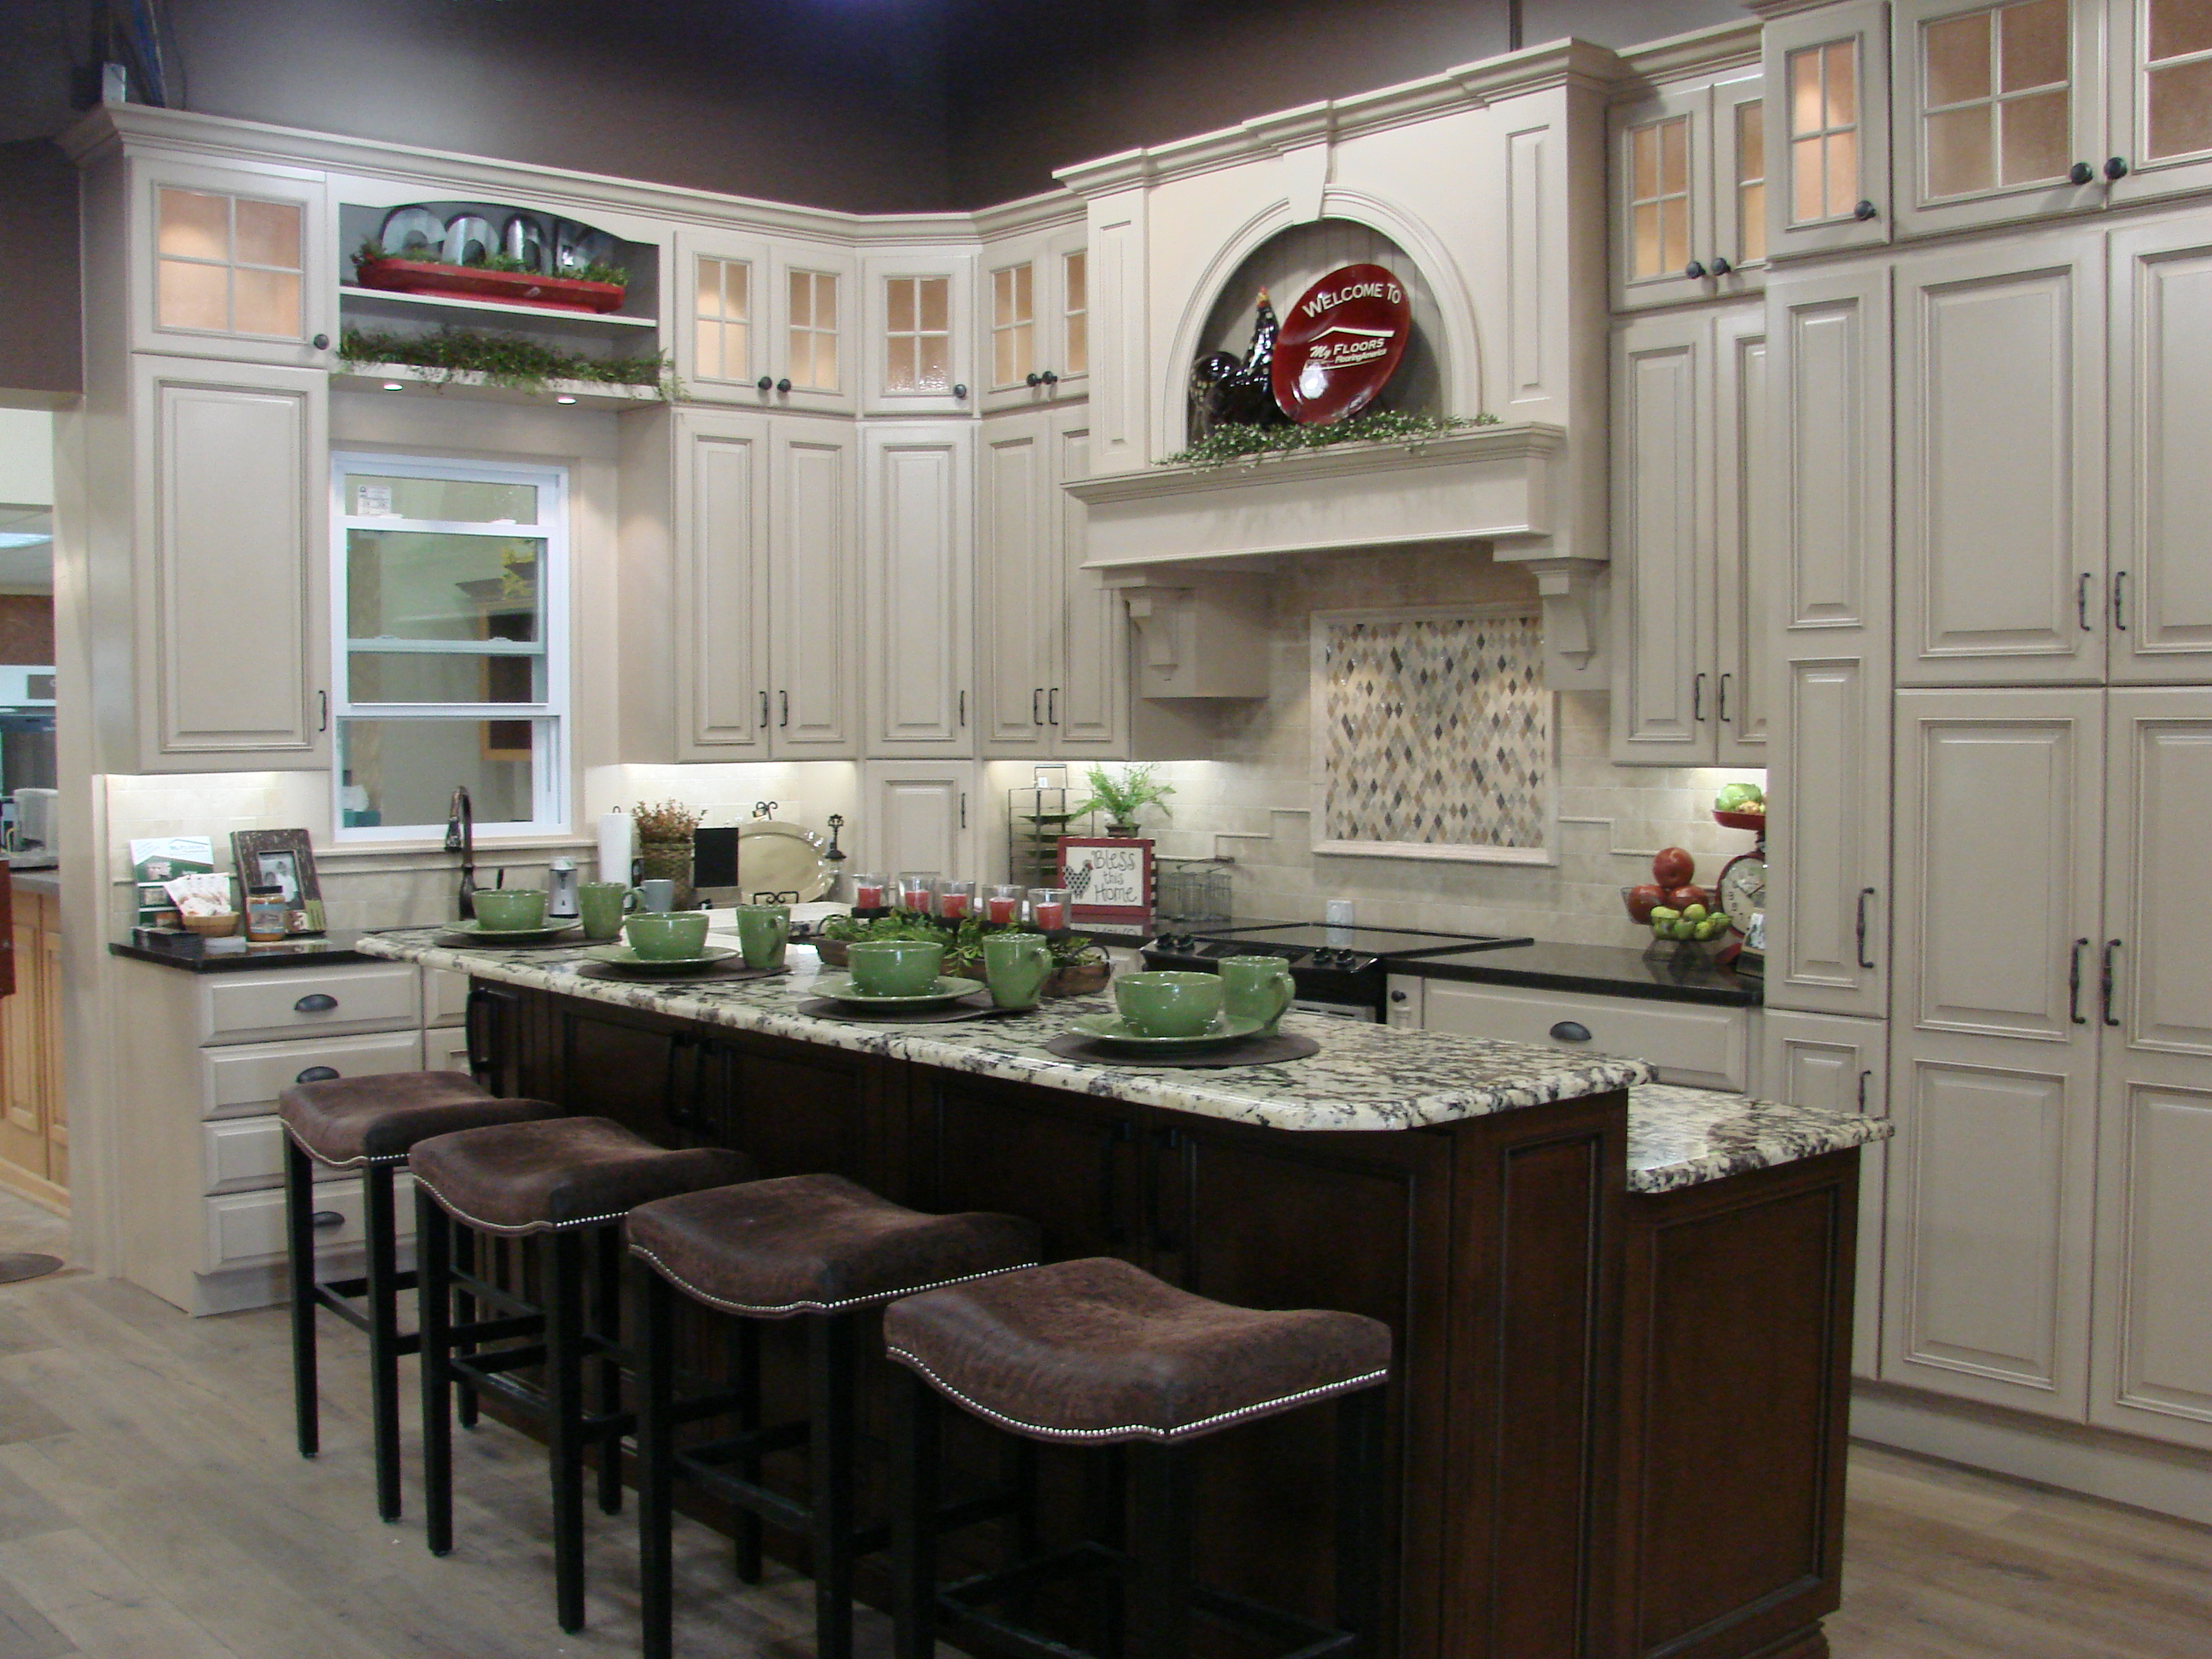 Remodeled Kitchen kitchen remodeling in mansfield, oh | custom renovations available